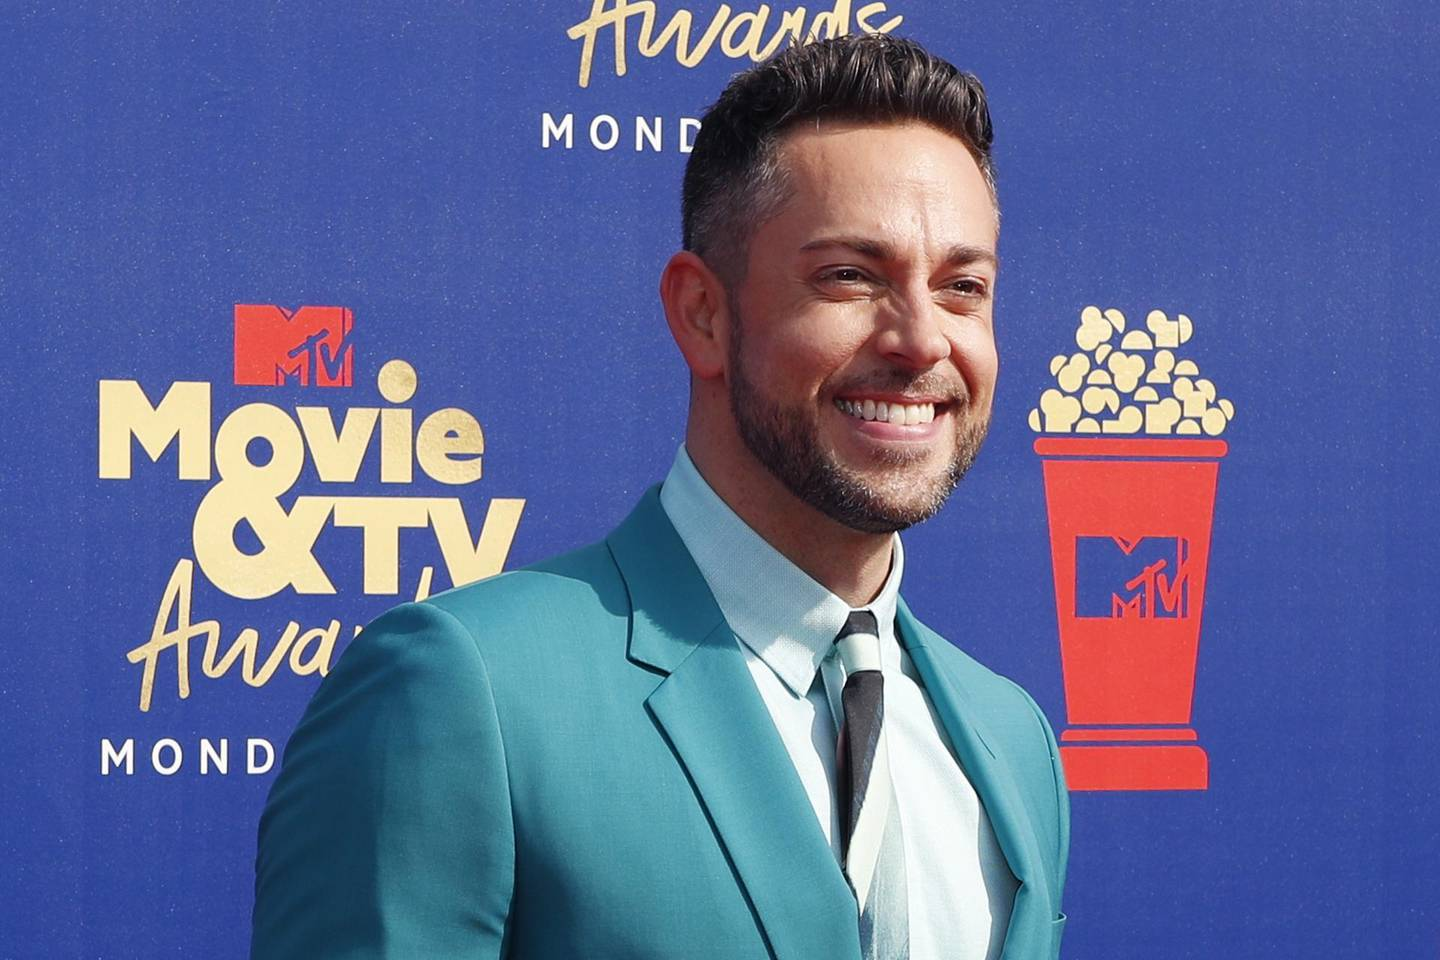 epa07651283 US actor Zachary Levi arrives for the 2019 MTV Movie & TV Awards at the Barker Hangar, Santa Monica, California, USA, 15 June 2019. The movies are nominated by producers and executives from MTV and the winners are chosen online by the general public.  EPA/NINA PROMMER